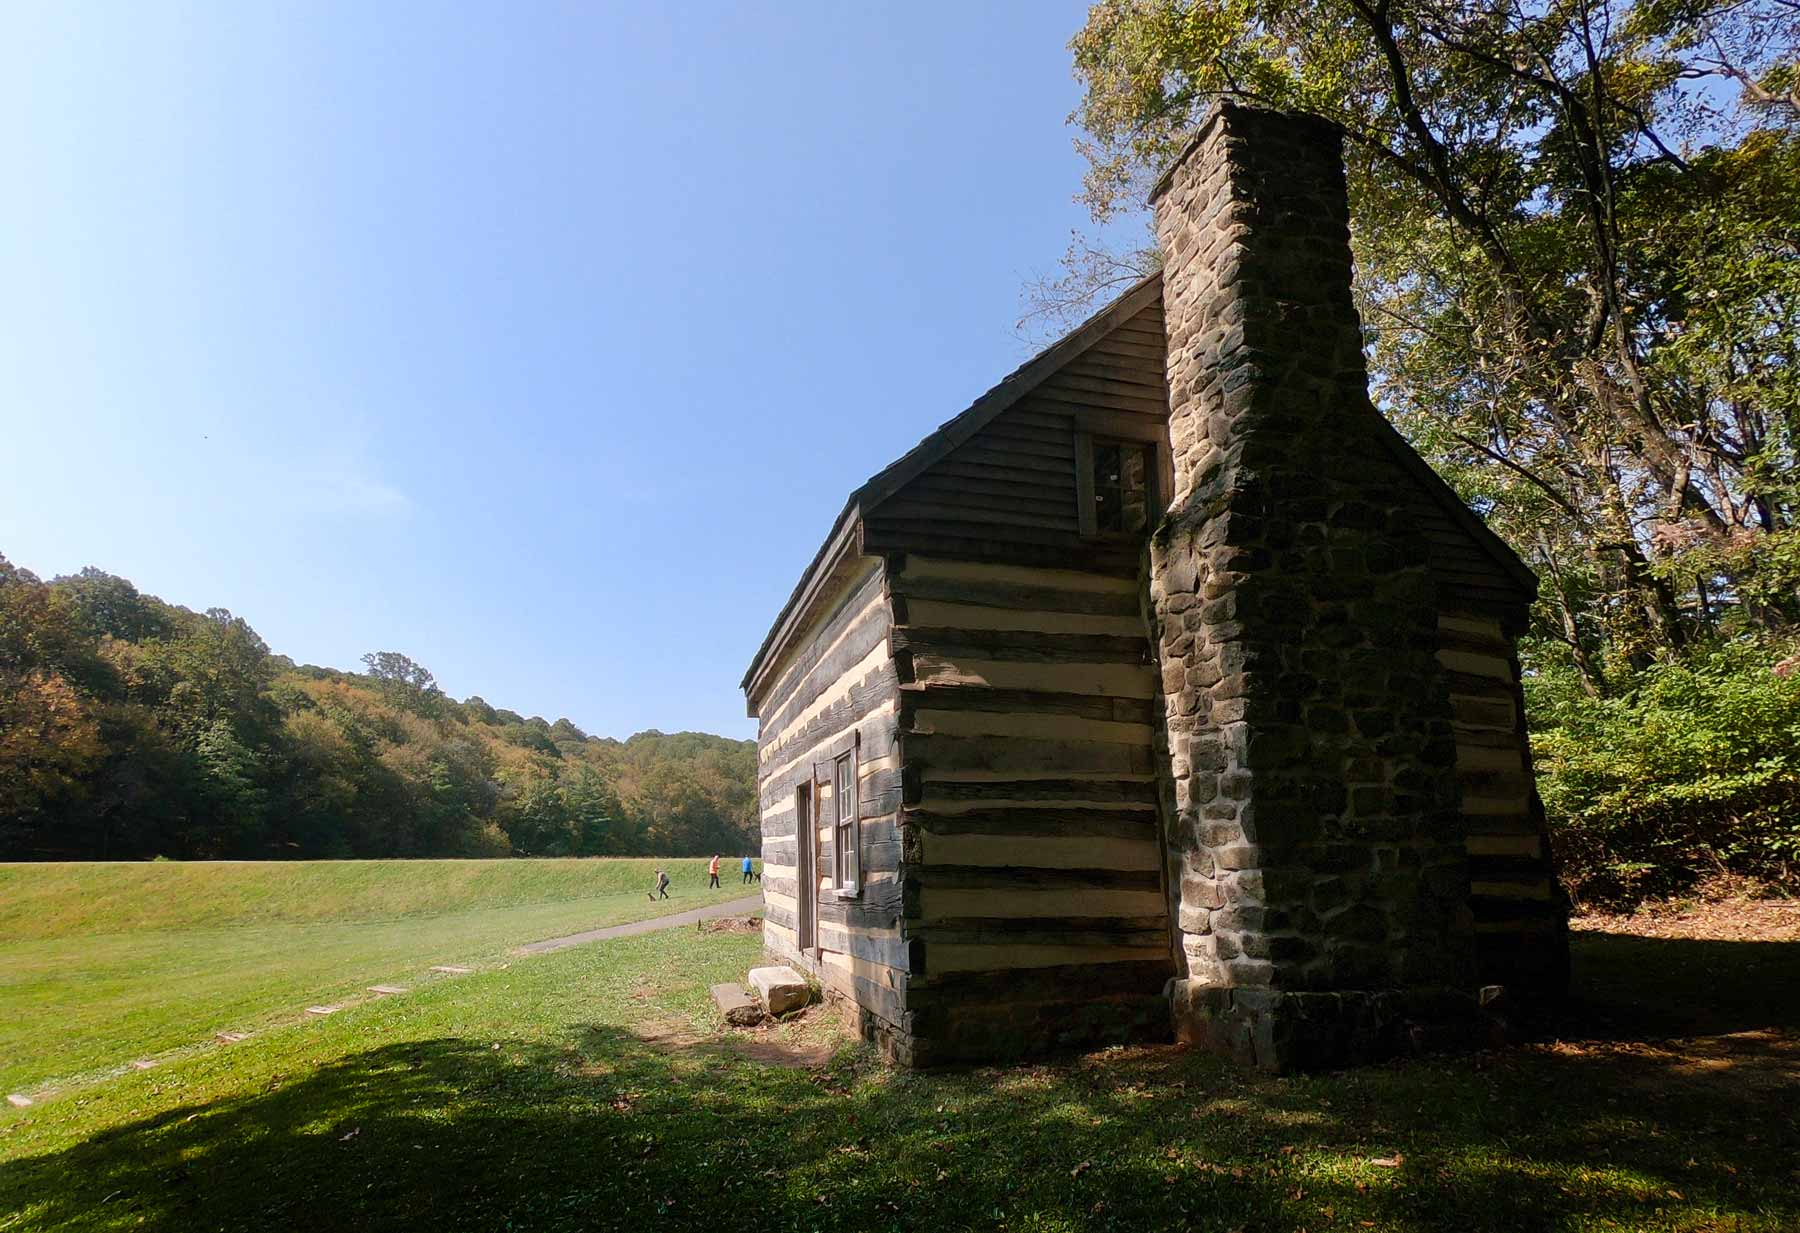 Polly Woods Ordinary cabin off the Abbott Lake Loop Trail in Peaks of Otter, Virginia